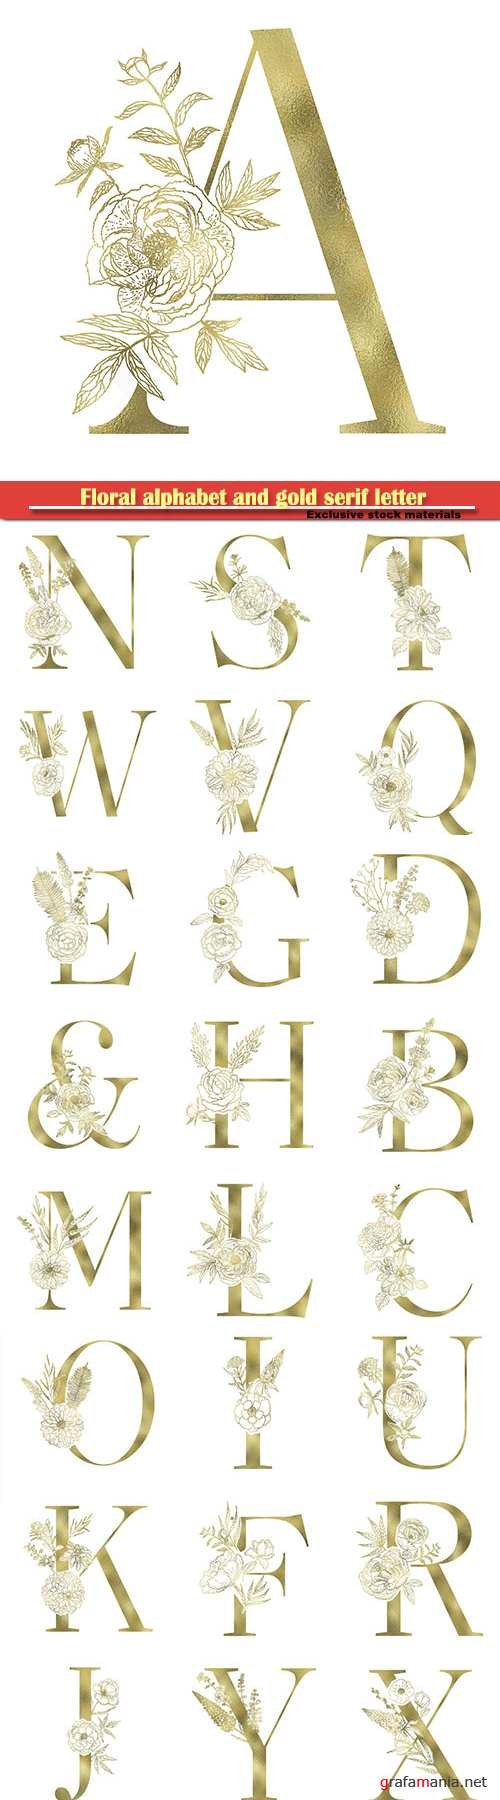 Floral alphabet and gold serif letter, vector decorative ABC